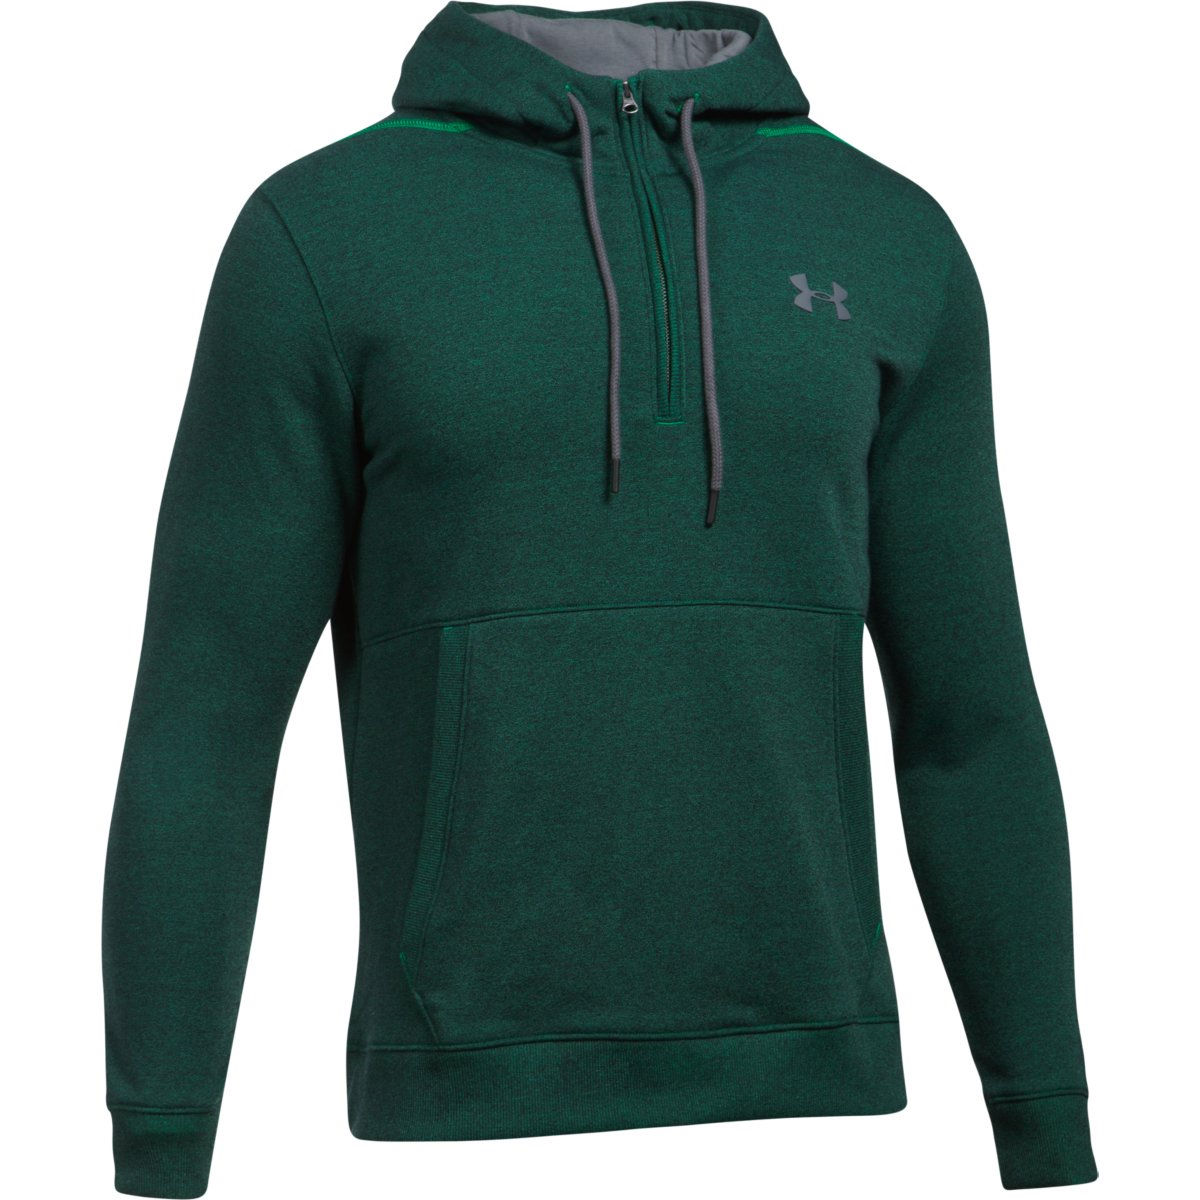 Top Under Armour coupon: Up to 40% Off Outlet + Additional 25% Off Outlet Orders $+. Get 15 Under Armour promo codes and coupons for December Fast, easy savings at RetailMeNot.